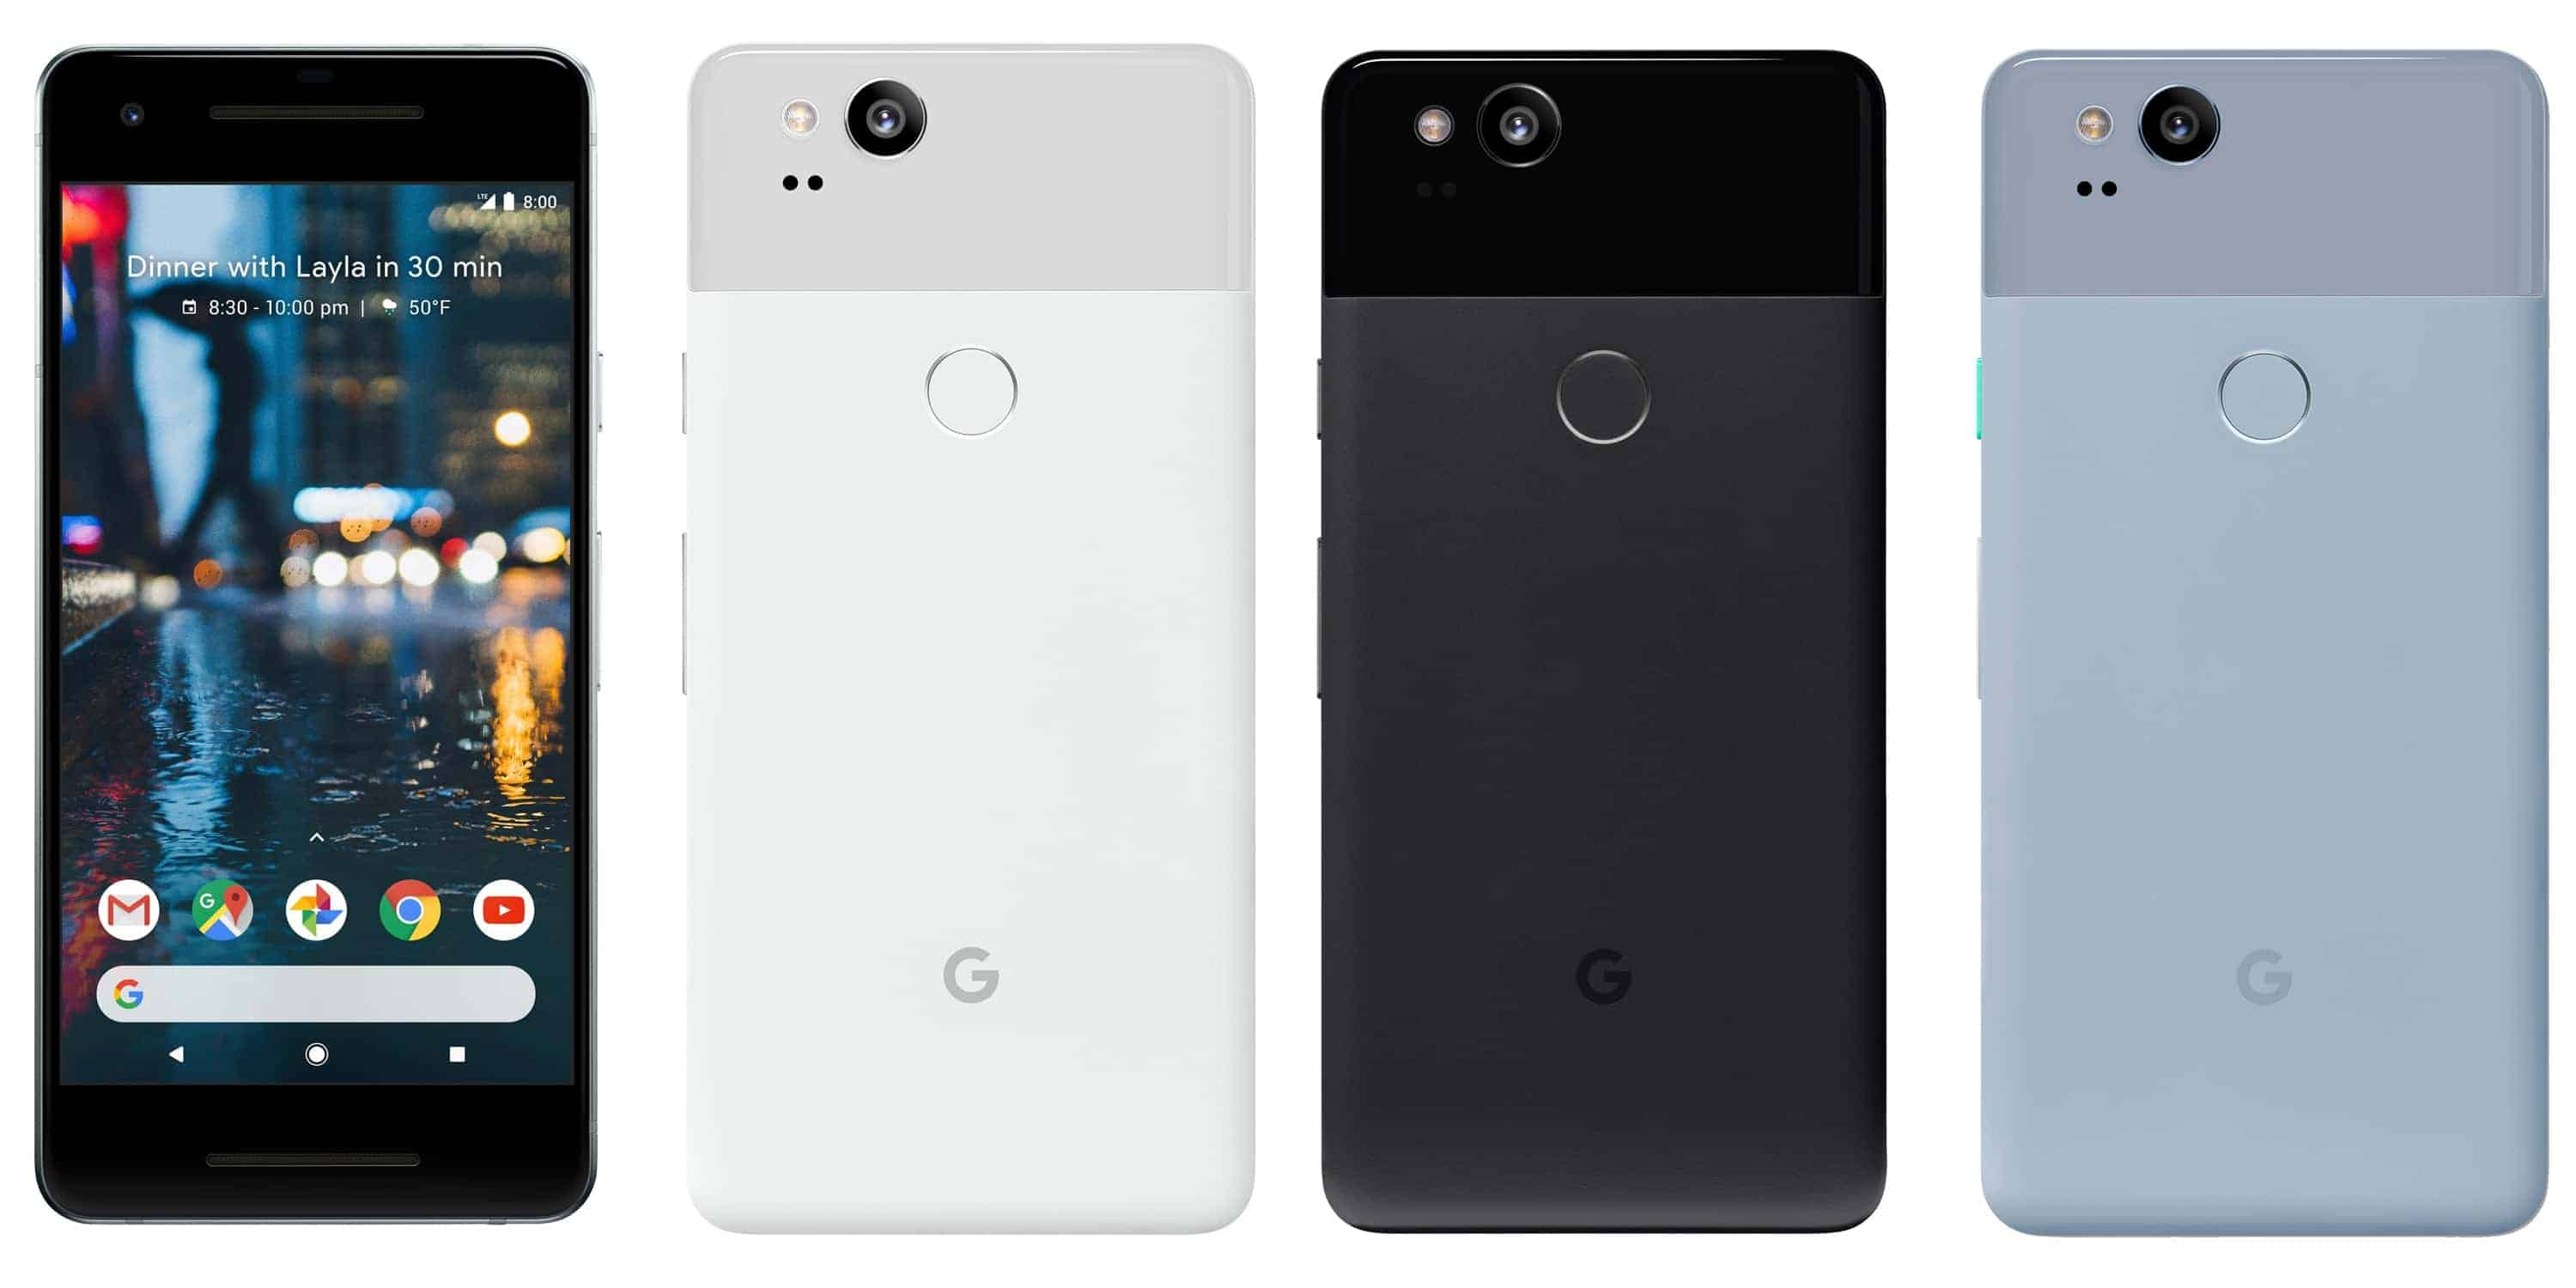 https venturebeat.com20171002these are the google pixel 2 and pixel 2 xl